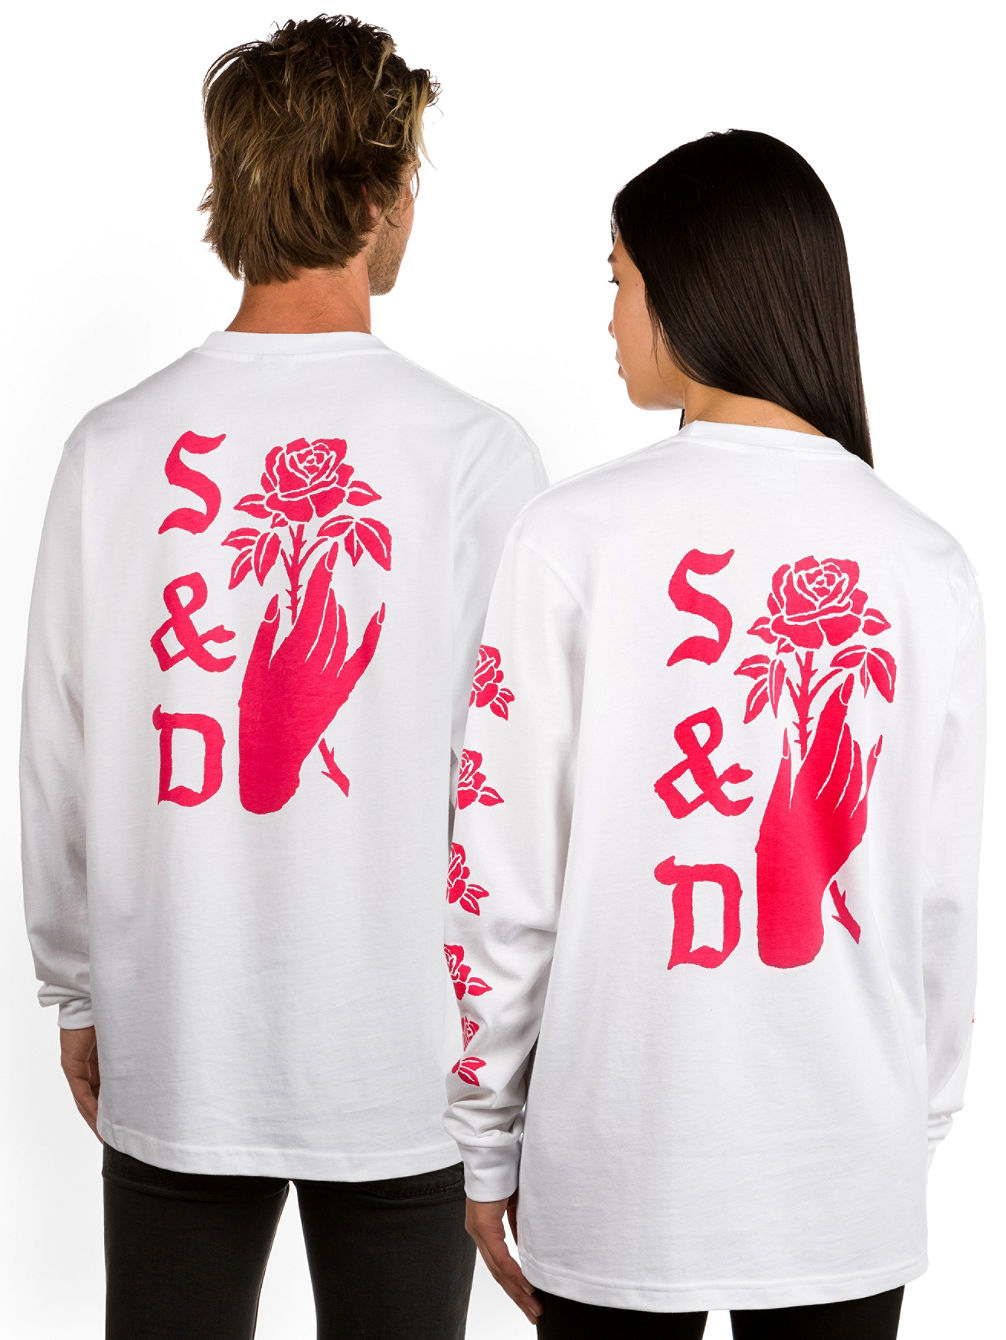 Rose Hand T-Shirt LS